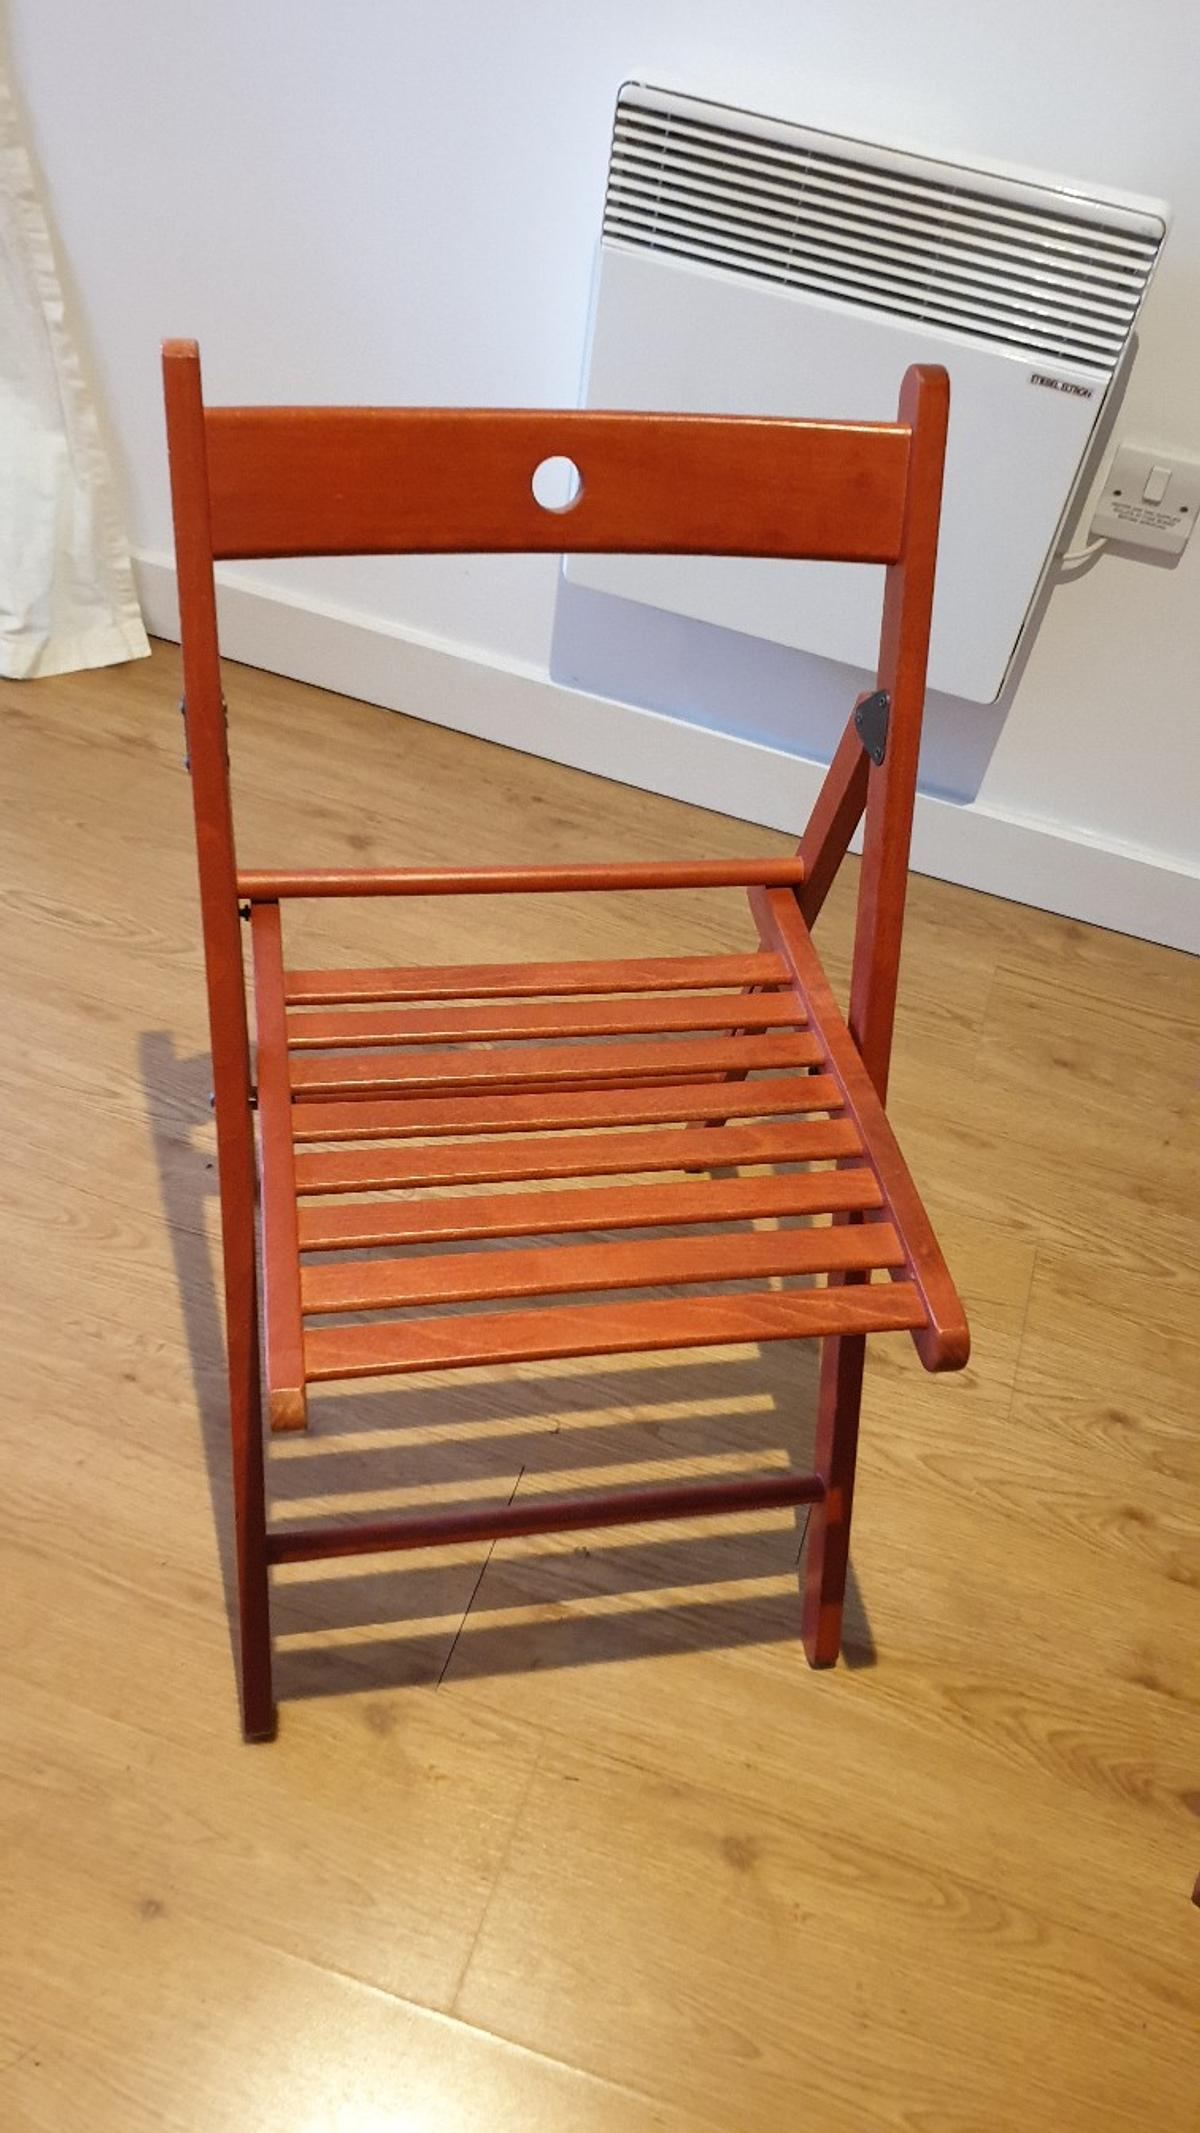 4 Folding Chairs Ikea Terje In E3 London Fur 28 00 Zum